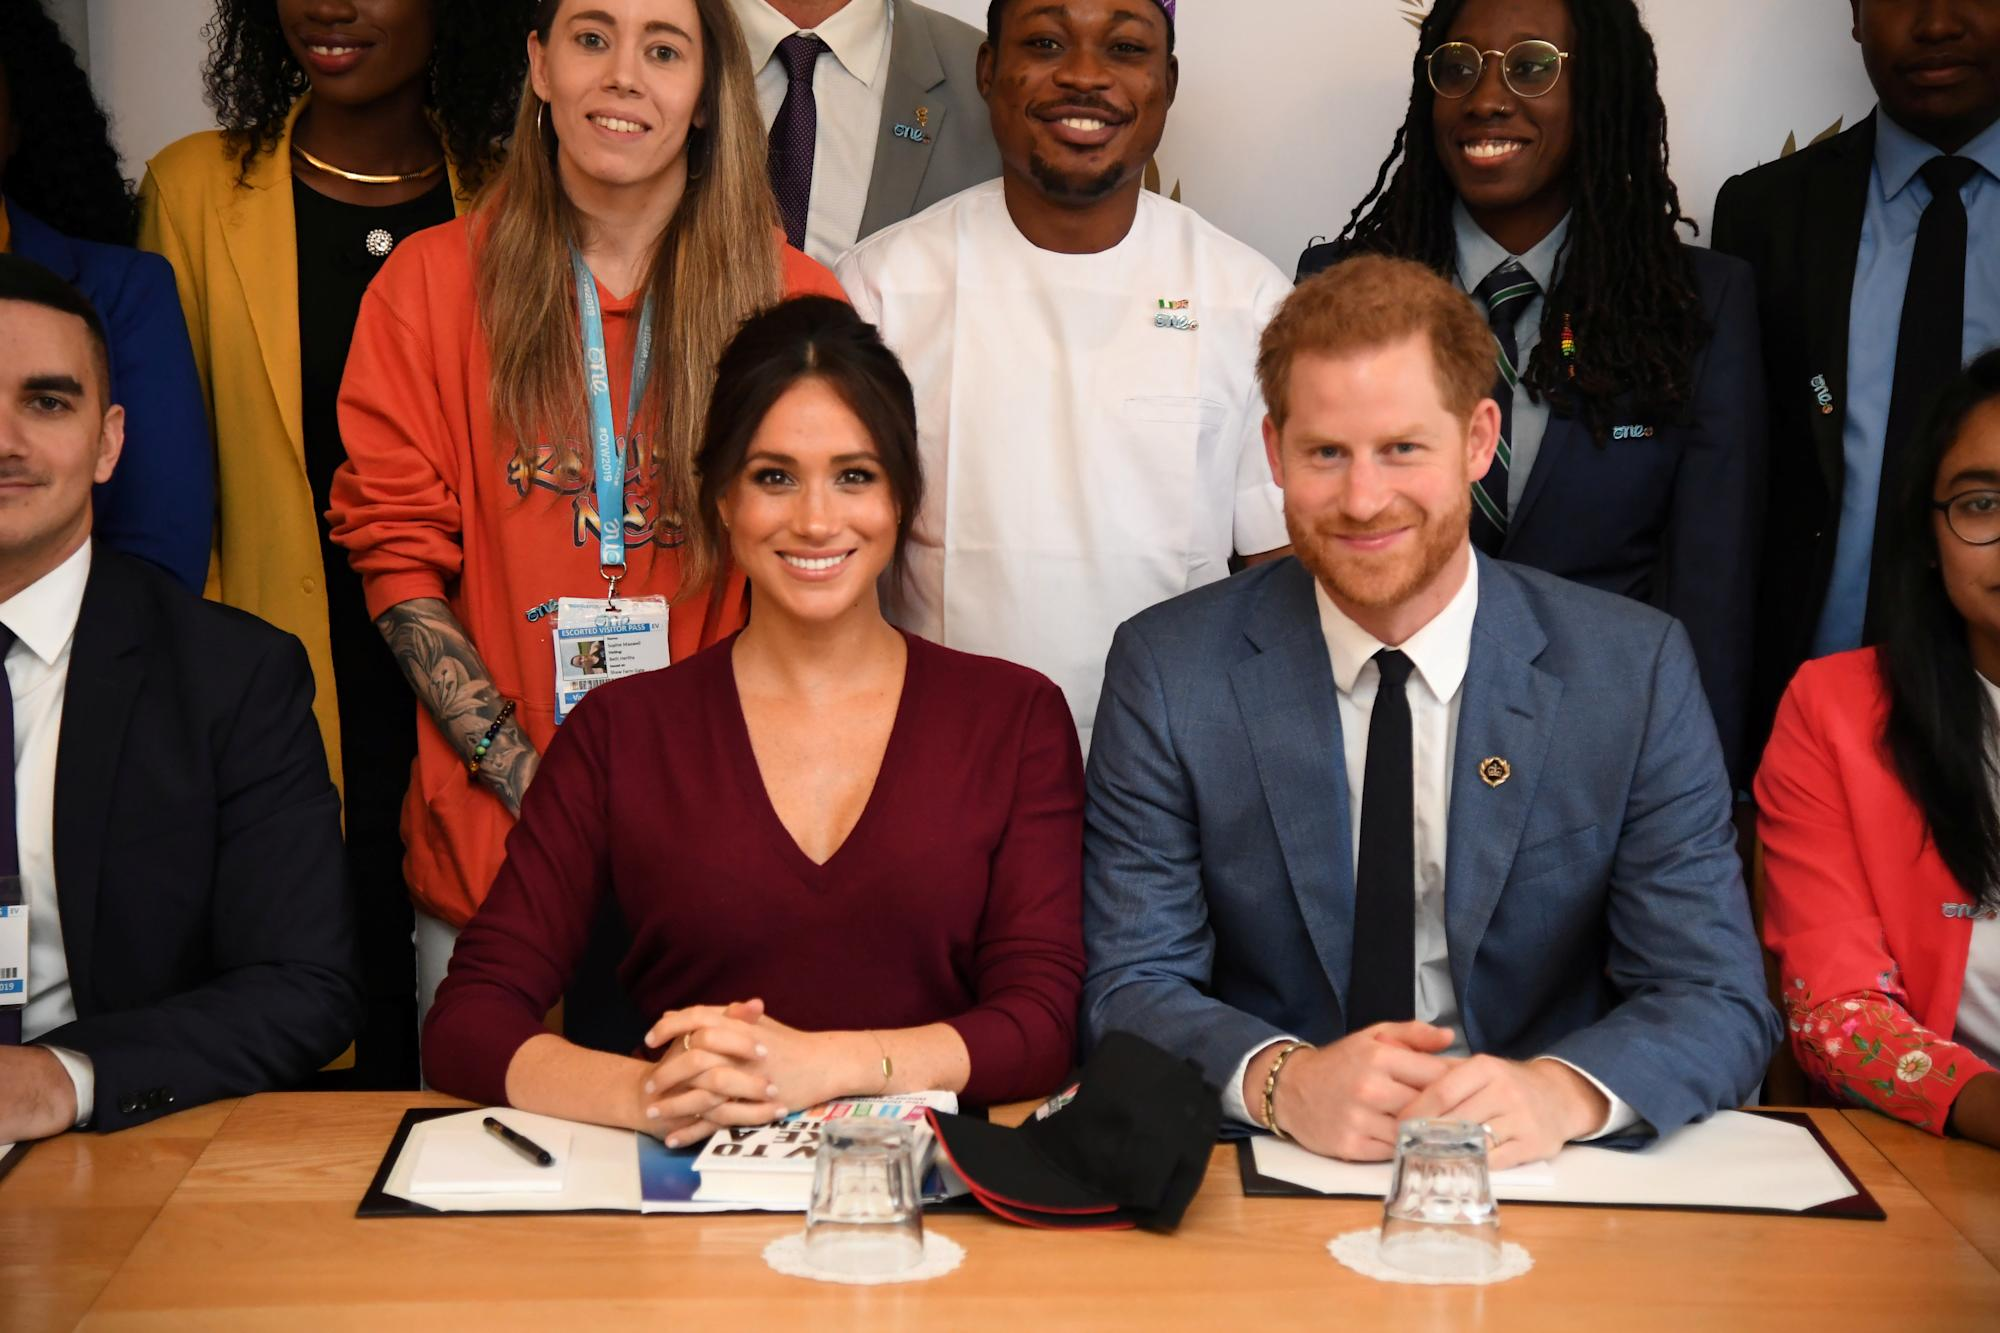 What will Harry and Meghan do when they go back to work?